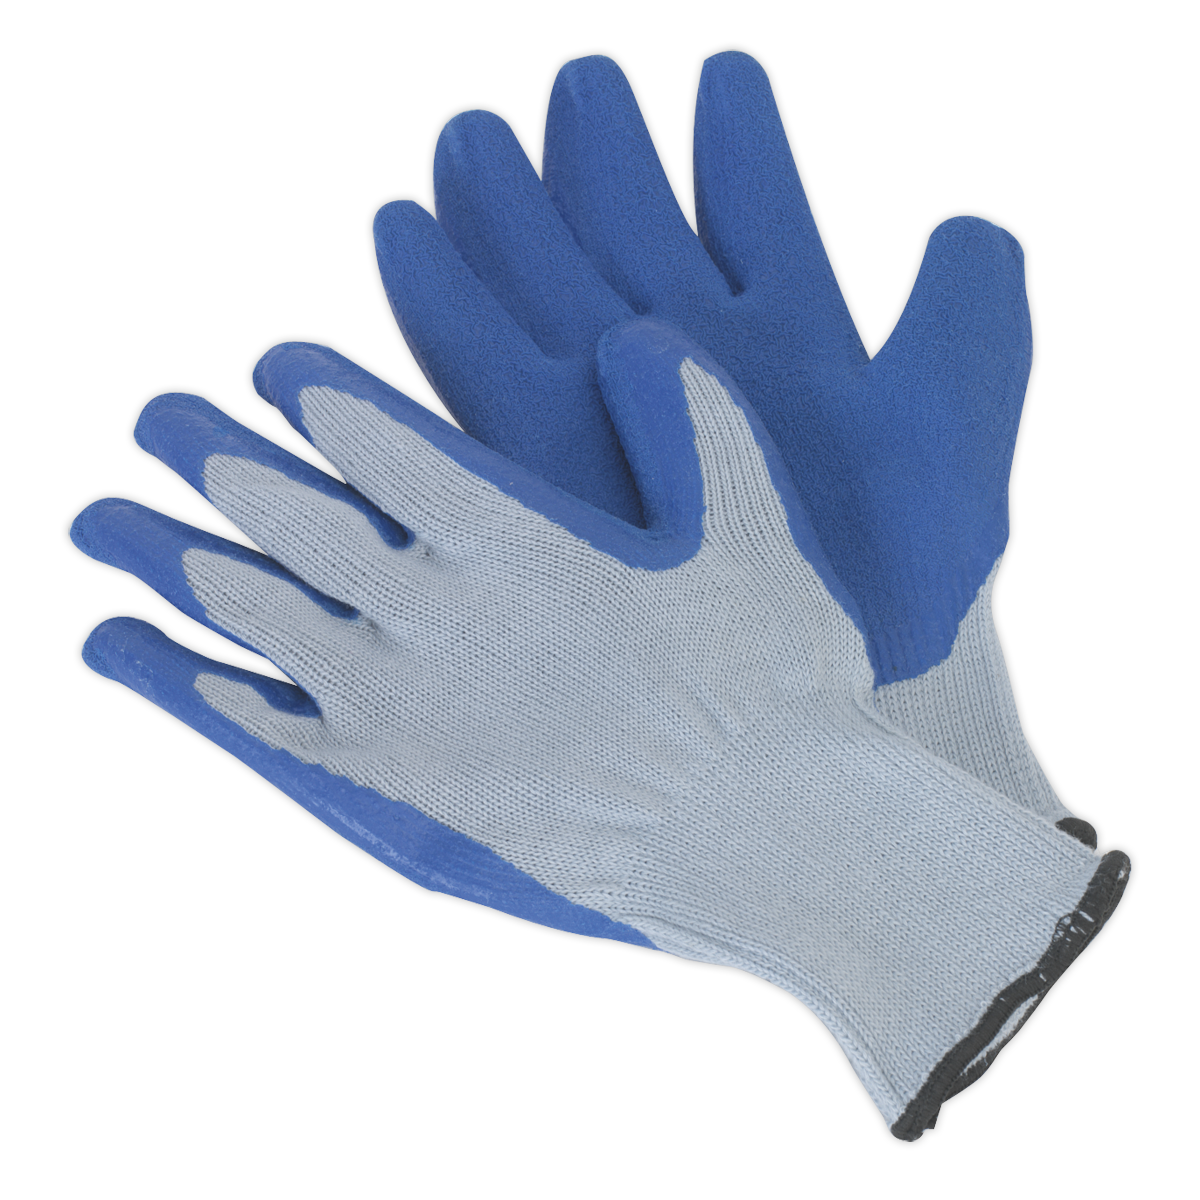 Latex Knitted Wrist Gloves - Large Pack of 12 Pairs